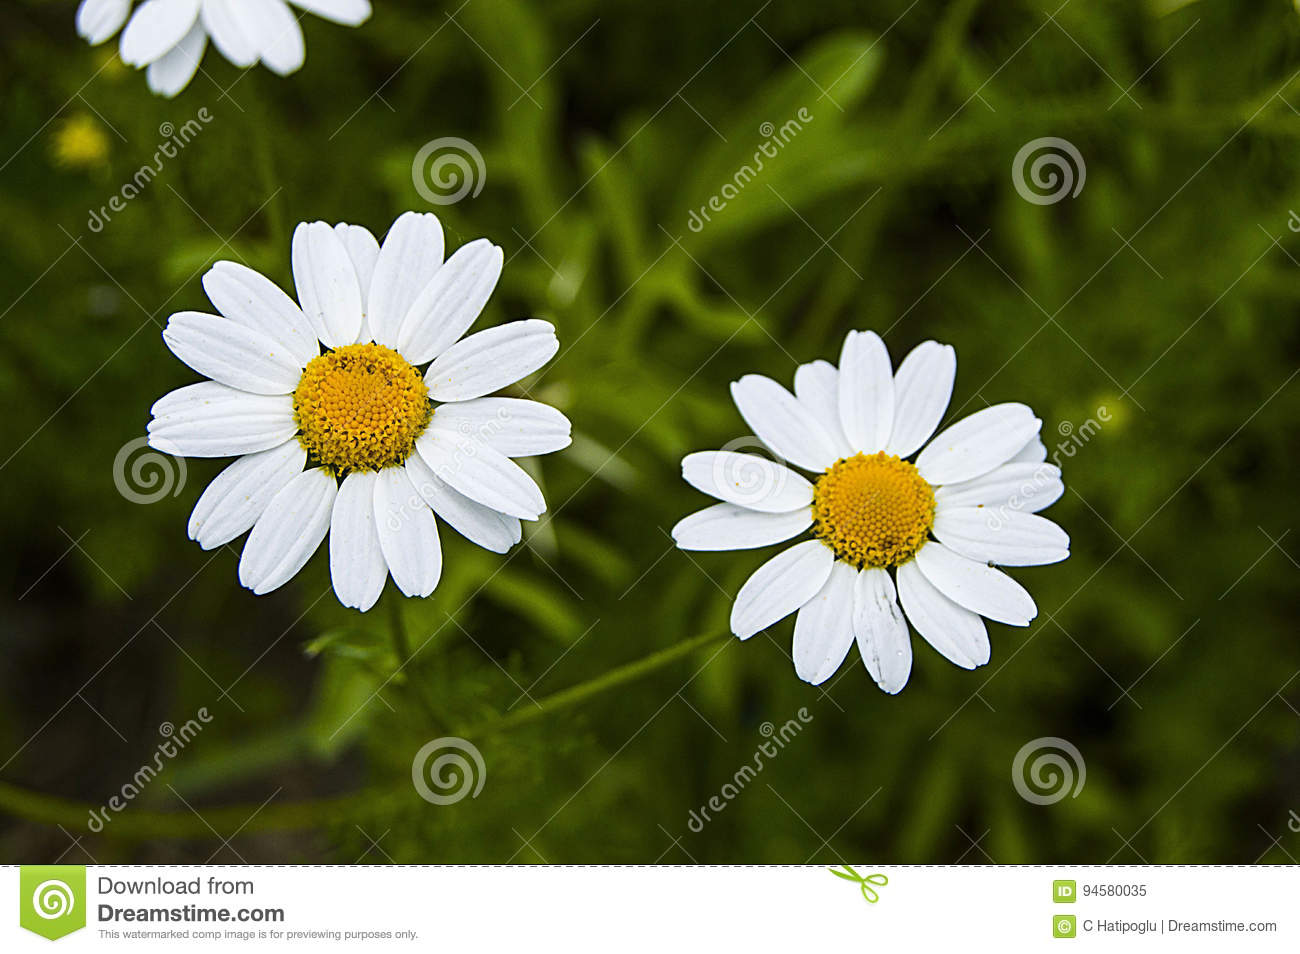 Daisy Flowers Pictures Of Daisy Flowers For Lovers Day The Most